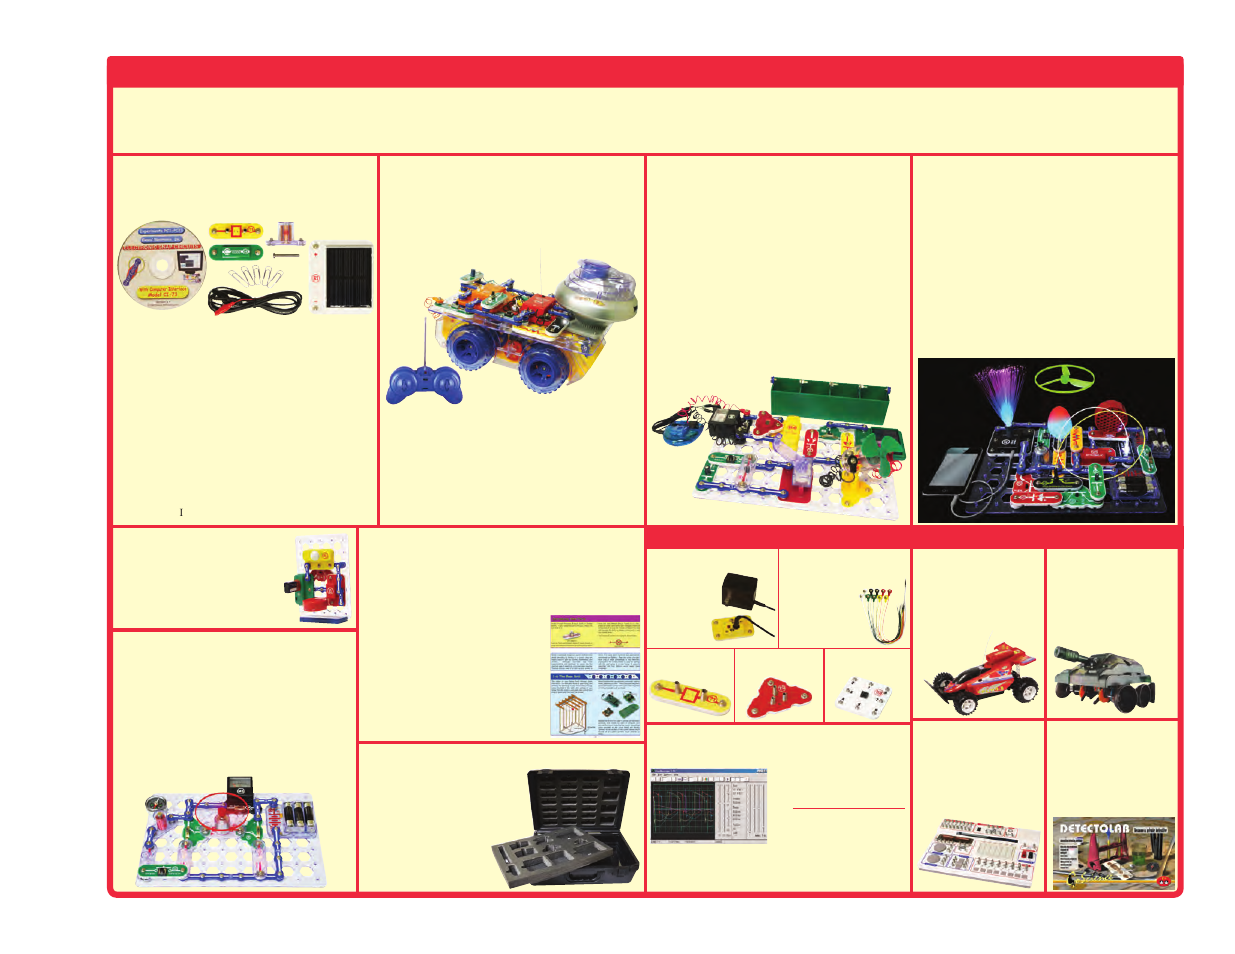 Other snap circuits, Products, Upgrade kit   Deluxe snap rover, Model uc-